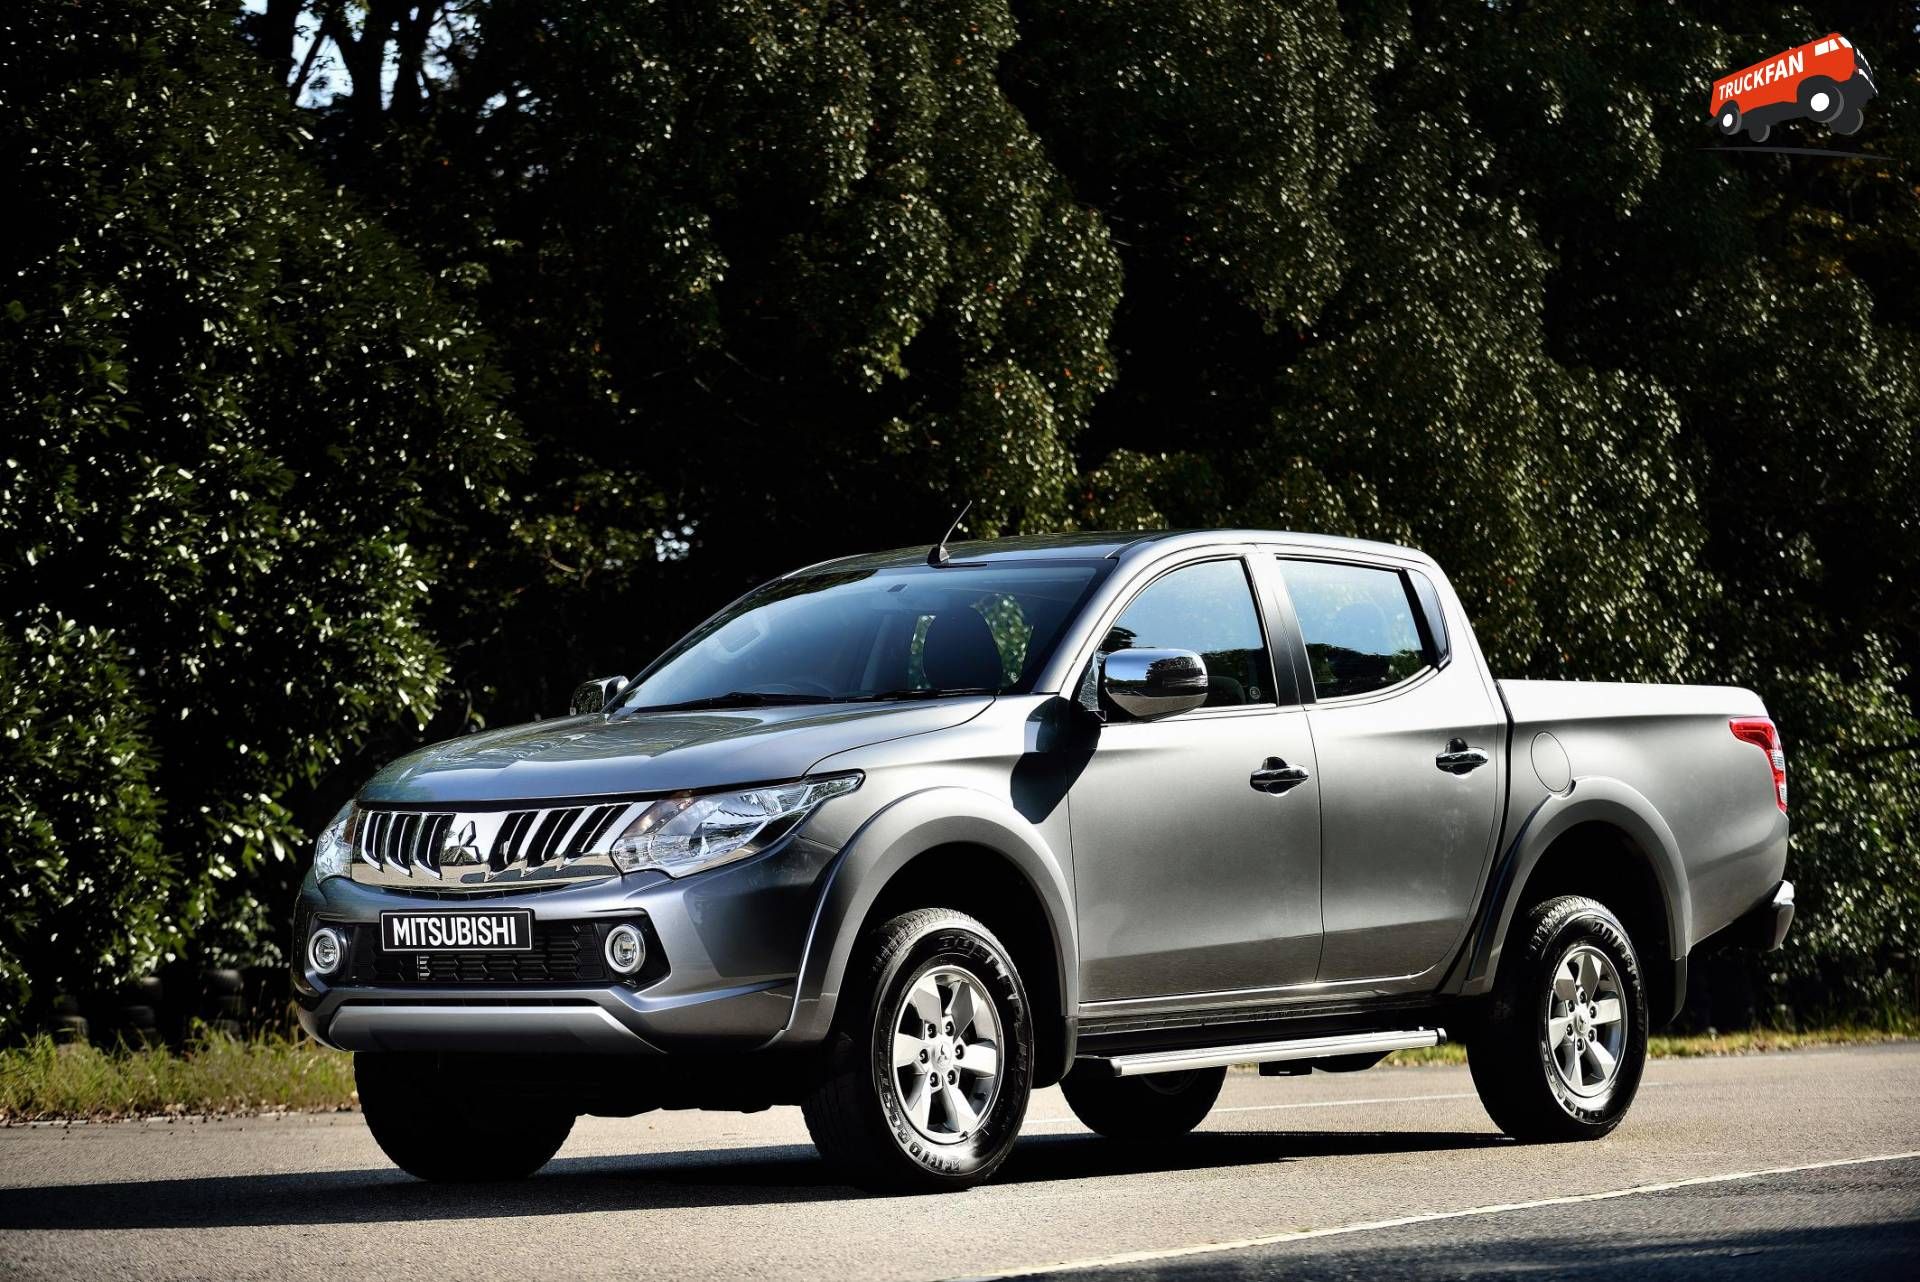 """Mitsubishi L200 Triton/Strada pickup which was launched in Thailand in November last year. While featuring improvements in its functionality and reliability as a work vehicle, it was developed as """"The ultimate sport utility truck"""" and to provide an interior space with comfort levels on par with a passenger model. The diesel version of the L200 uses a turbocharged 2.4-liter MIVEC diesel engine which complies with European emission regulations. In addition it emits just 169 g/km of CO2, among the lowest in its class while delivering powerful output with 181 ps (High Power model). Four-wheel drive models employ the Super Select 4WD-II drivetrain from the Pajero*4 with four selectable drive modes to give the driver the ideal traction for any types of road conditions and outstanding all-terrain performance. The all-new Triton/L200 pickups are being introduced sequentially over the globe with plans to eventually introduce them into some 150 countries Triton/Strada pickup which was launched in Thailand in November last year. While featuring improvements in its functionality and reliability as a work vehicle, it was developed as """"The ultimate sport utility truck"""" and to provide an interior space with comfort levels on par with a passenger model. The diesel version of the L200 uses a turbocharged 2.4-liter MIVEC diesel engine which complies with European emission regulations. In addition it emits just 169 g/km of CO2, among the lowest in its class while delivering powerful output with 181 ps (High Power model). Four-wheel drive models employ the Super Select 4WD-II drivetrain from the Pajero*4 with four selectable drive modes to give the driver the ideal traction for any types of road conditions and outstanding all-terrain performance. The all-new Triton/L200 pickups are being introduced sequentially over the globe with plans to eventually introduce them into some 150 countries Triton/Strada pickup which was launched in Thailand in November last year. While featuring improve"""